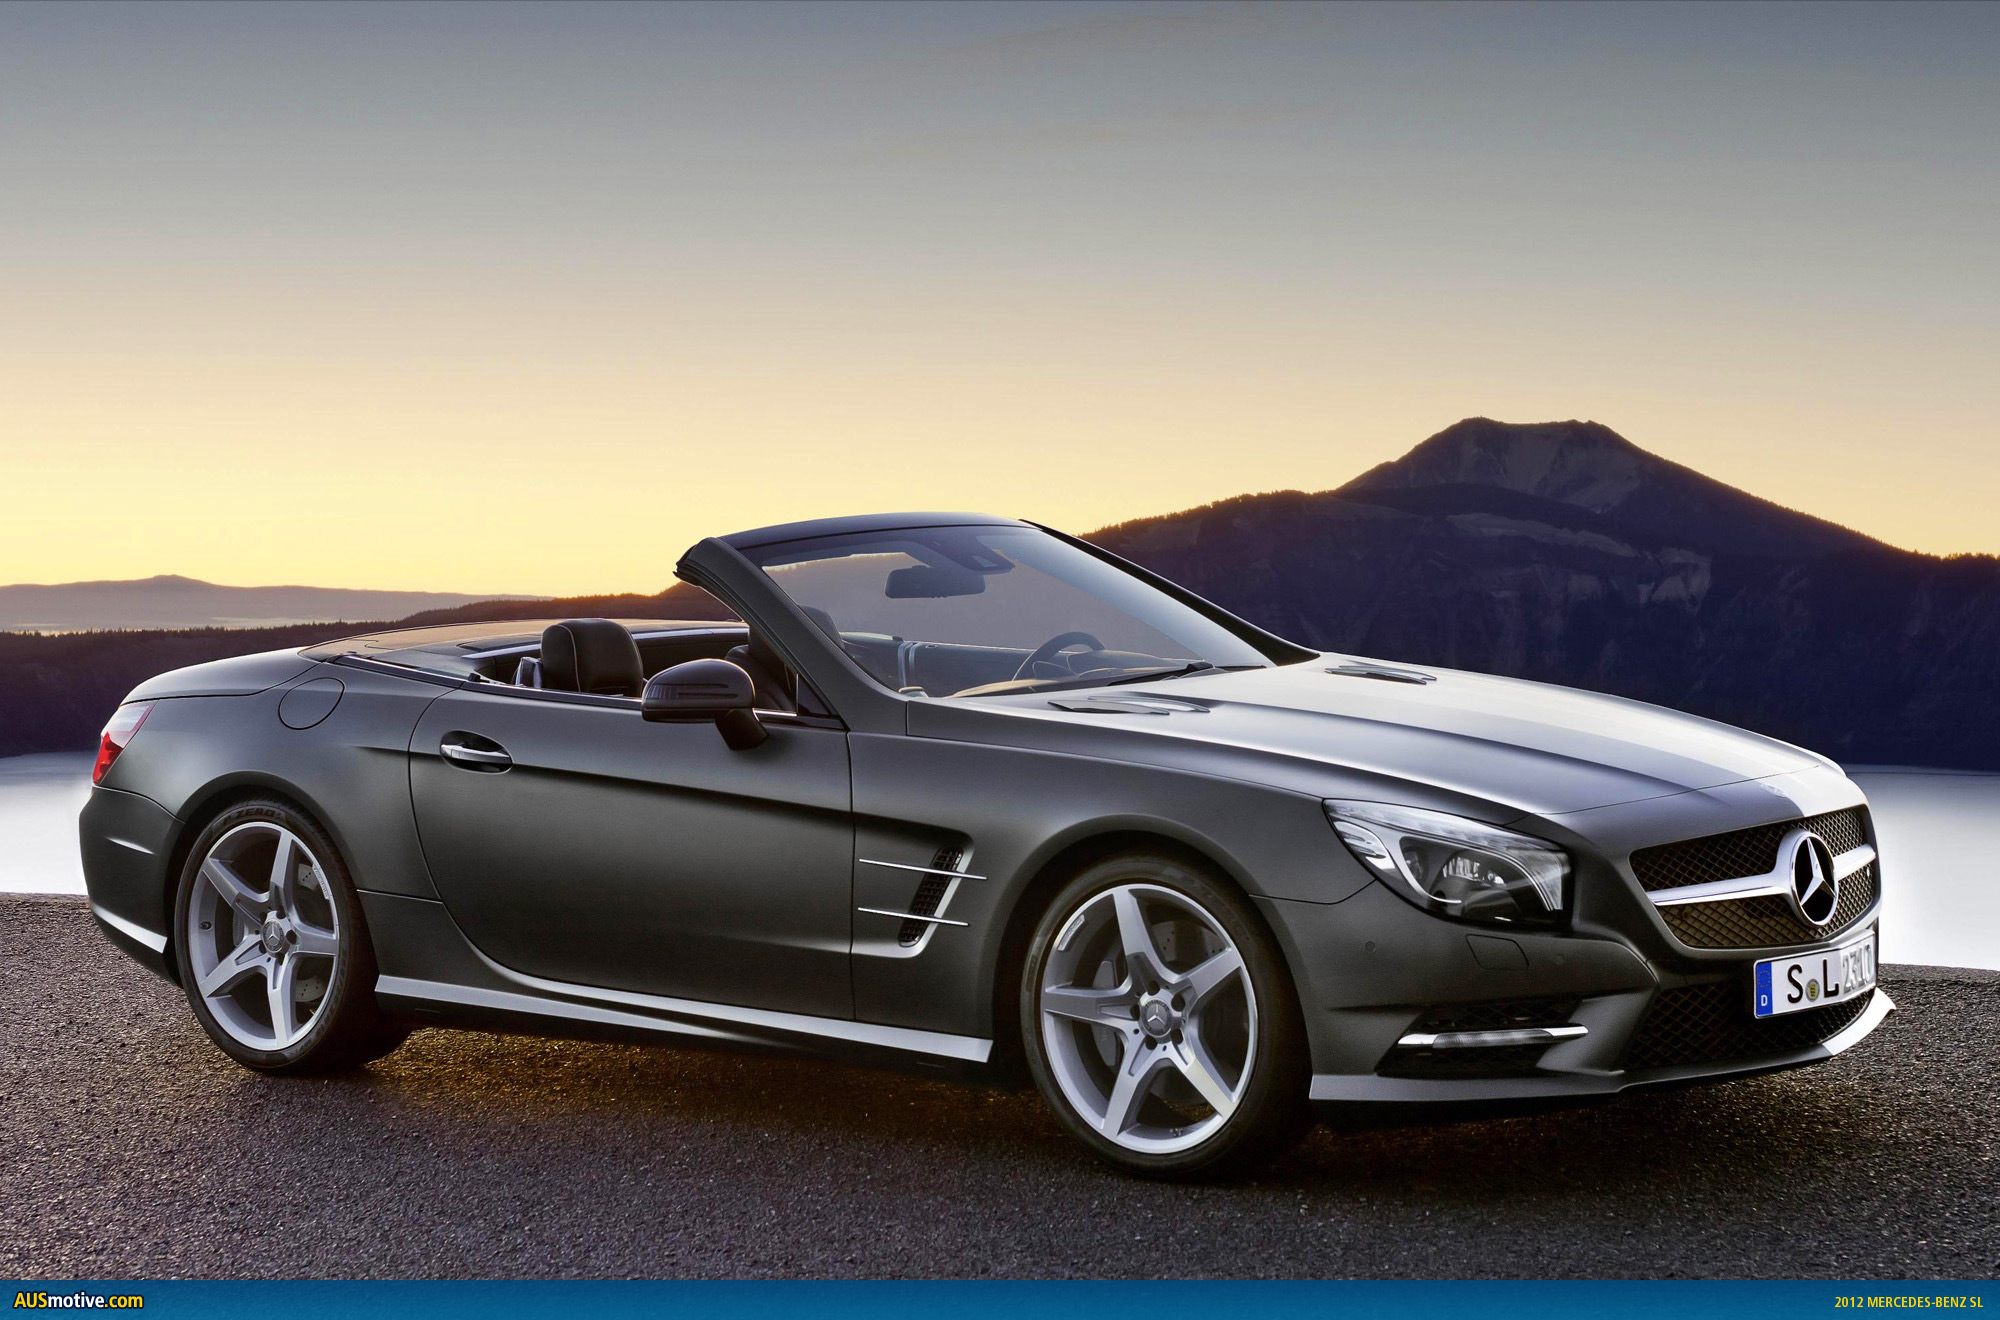 2012 mercedes benz sl finally revealed for Mercedes benz sl convertible for sale